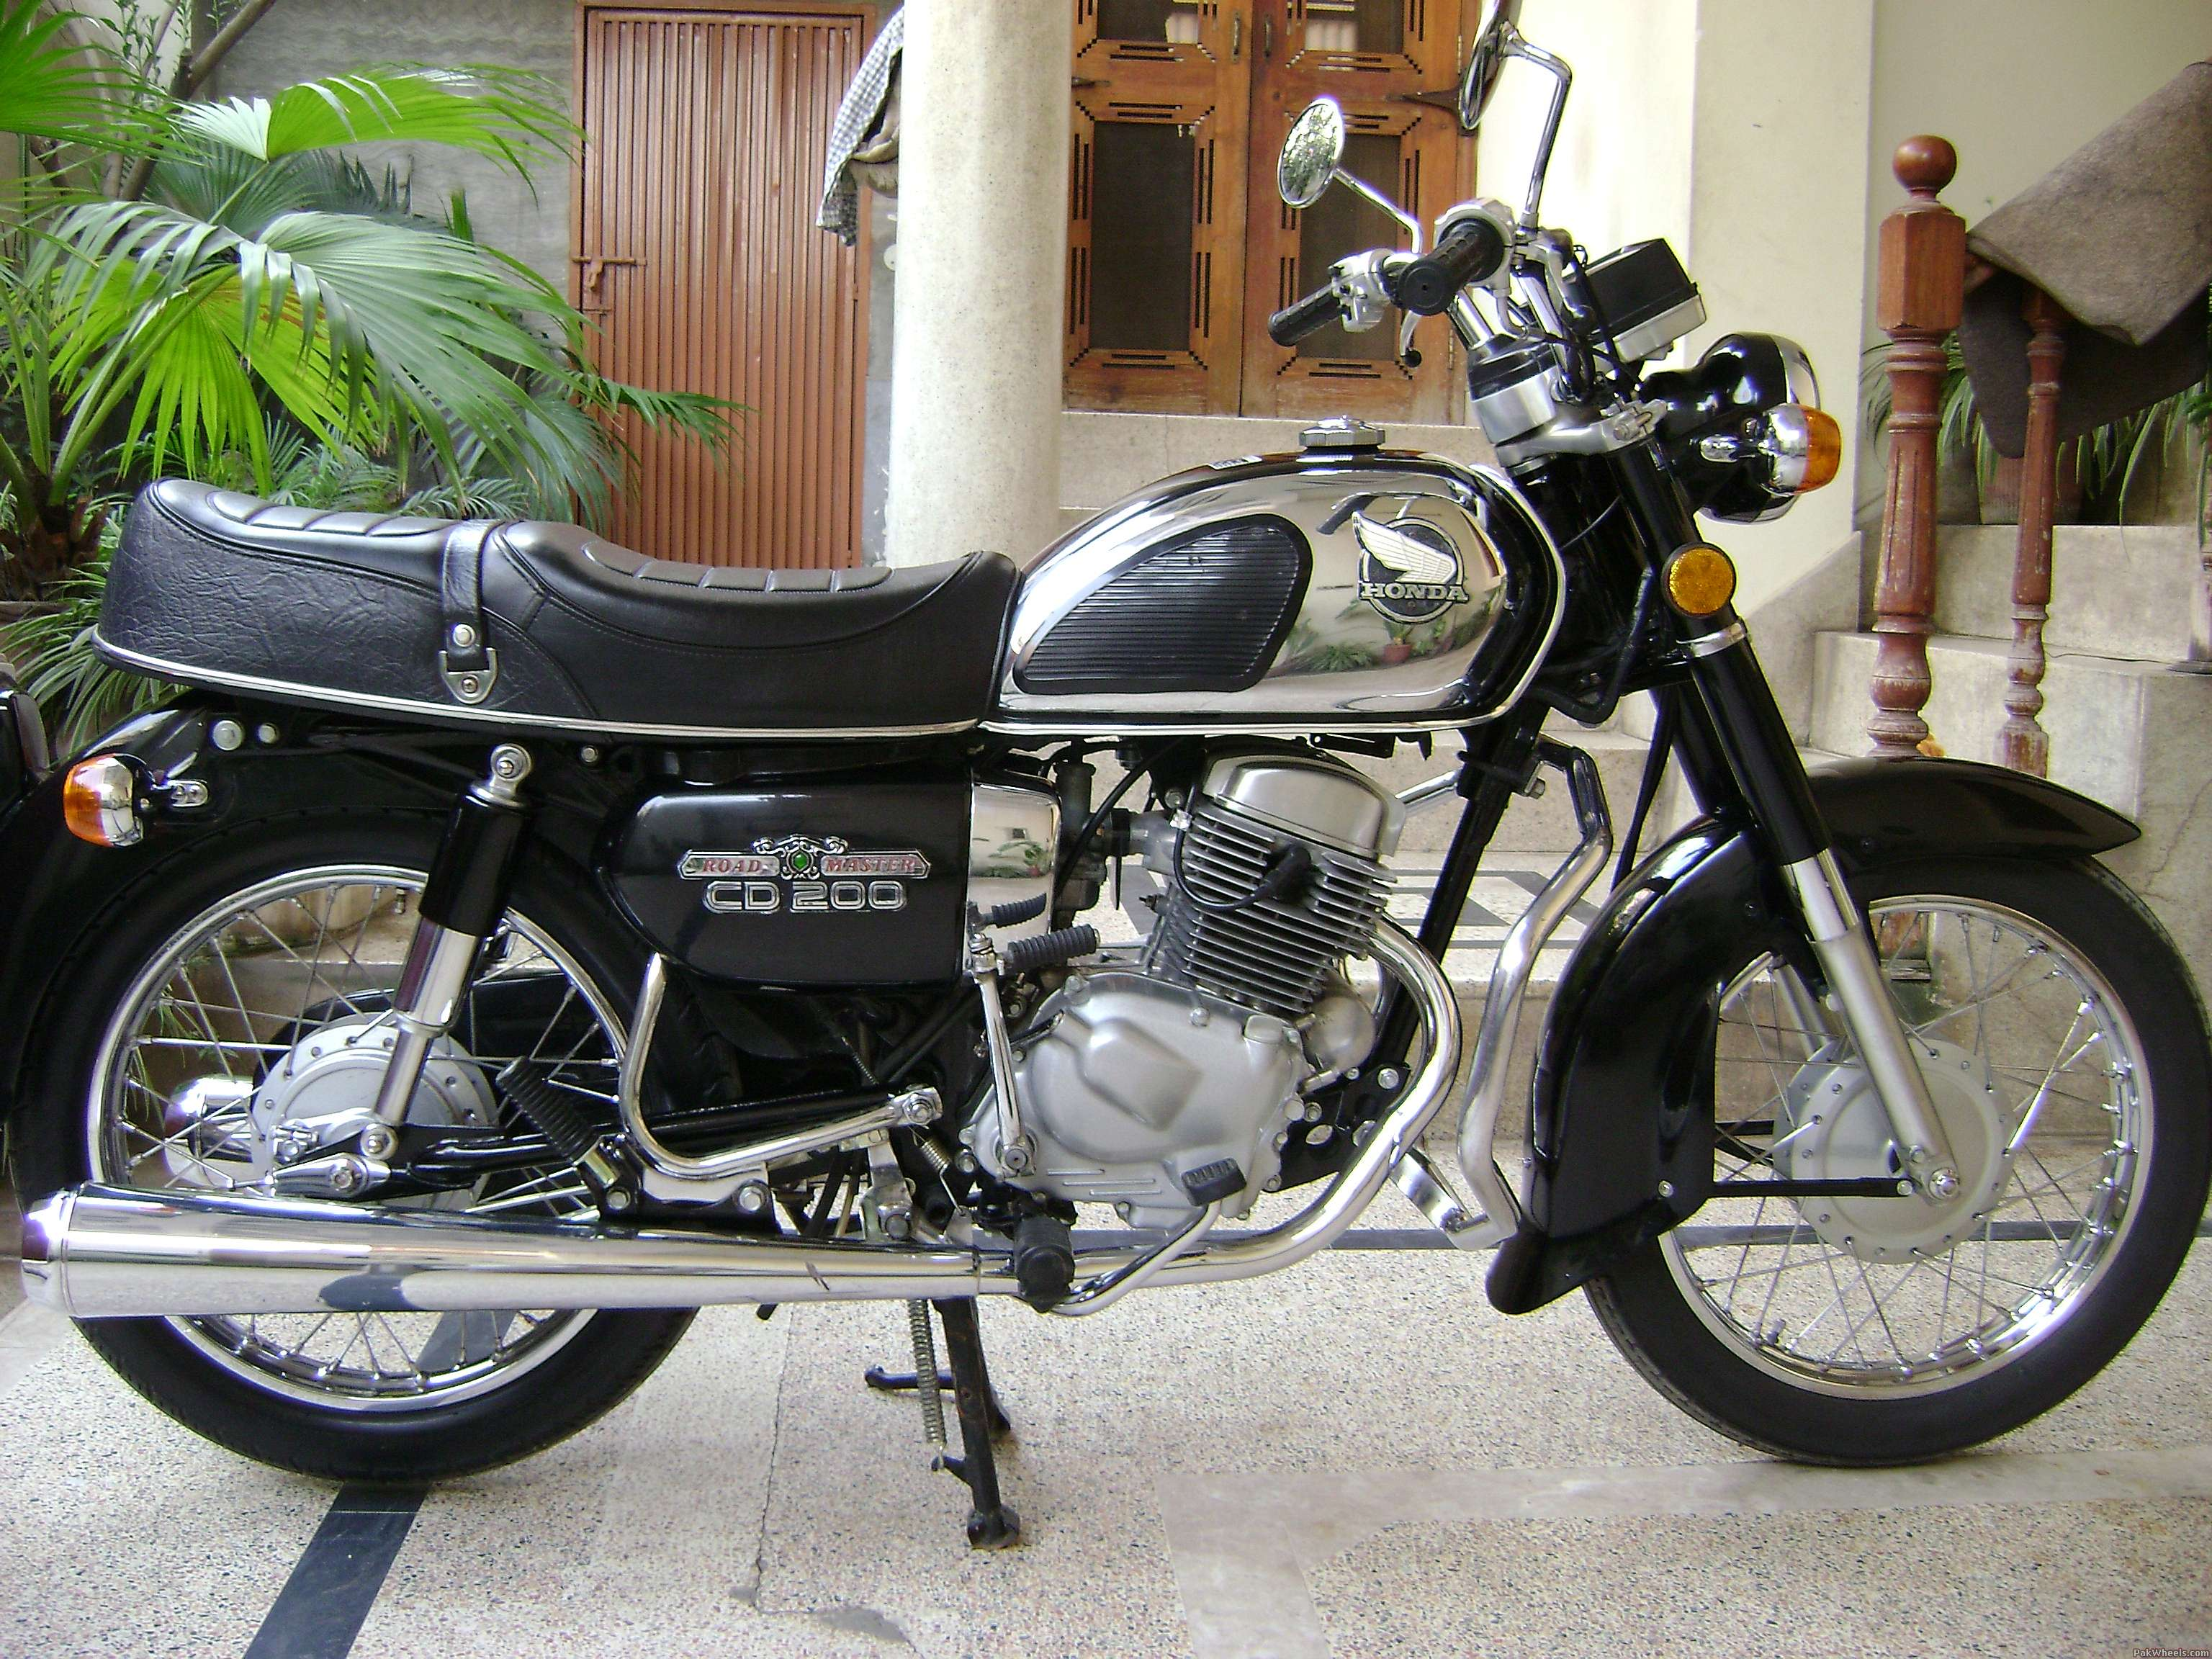 Honda CD 200 1981 of alive07 - Member Ride 10117 | PakWheels